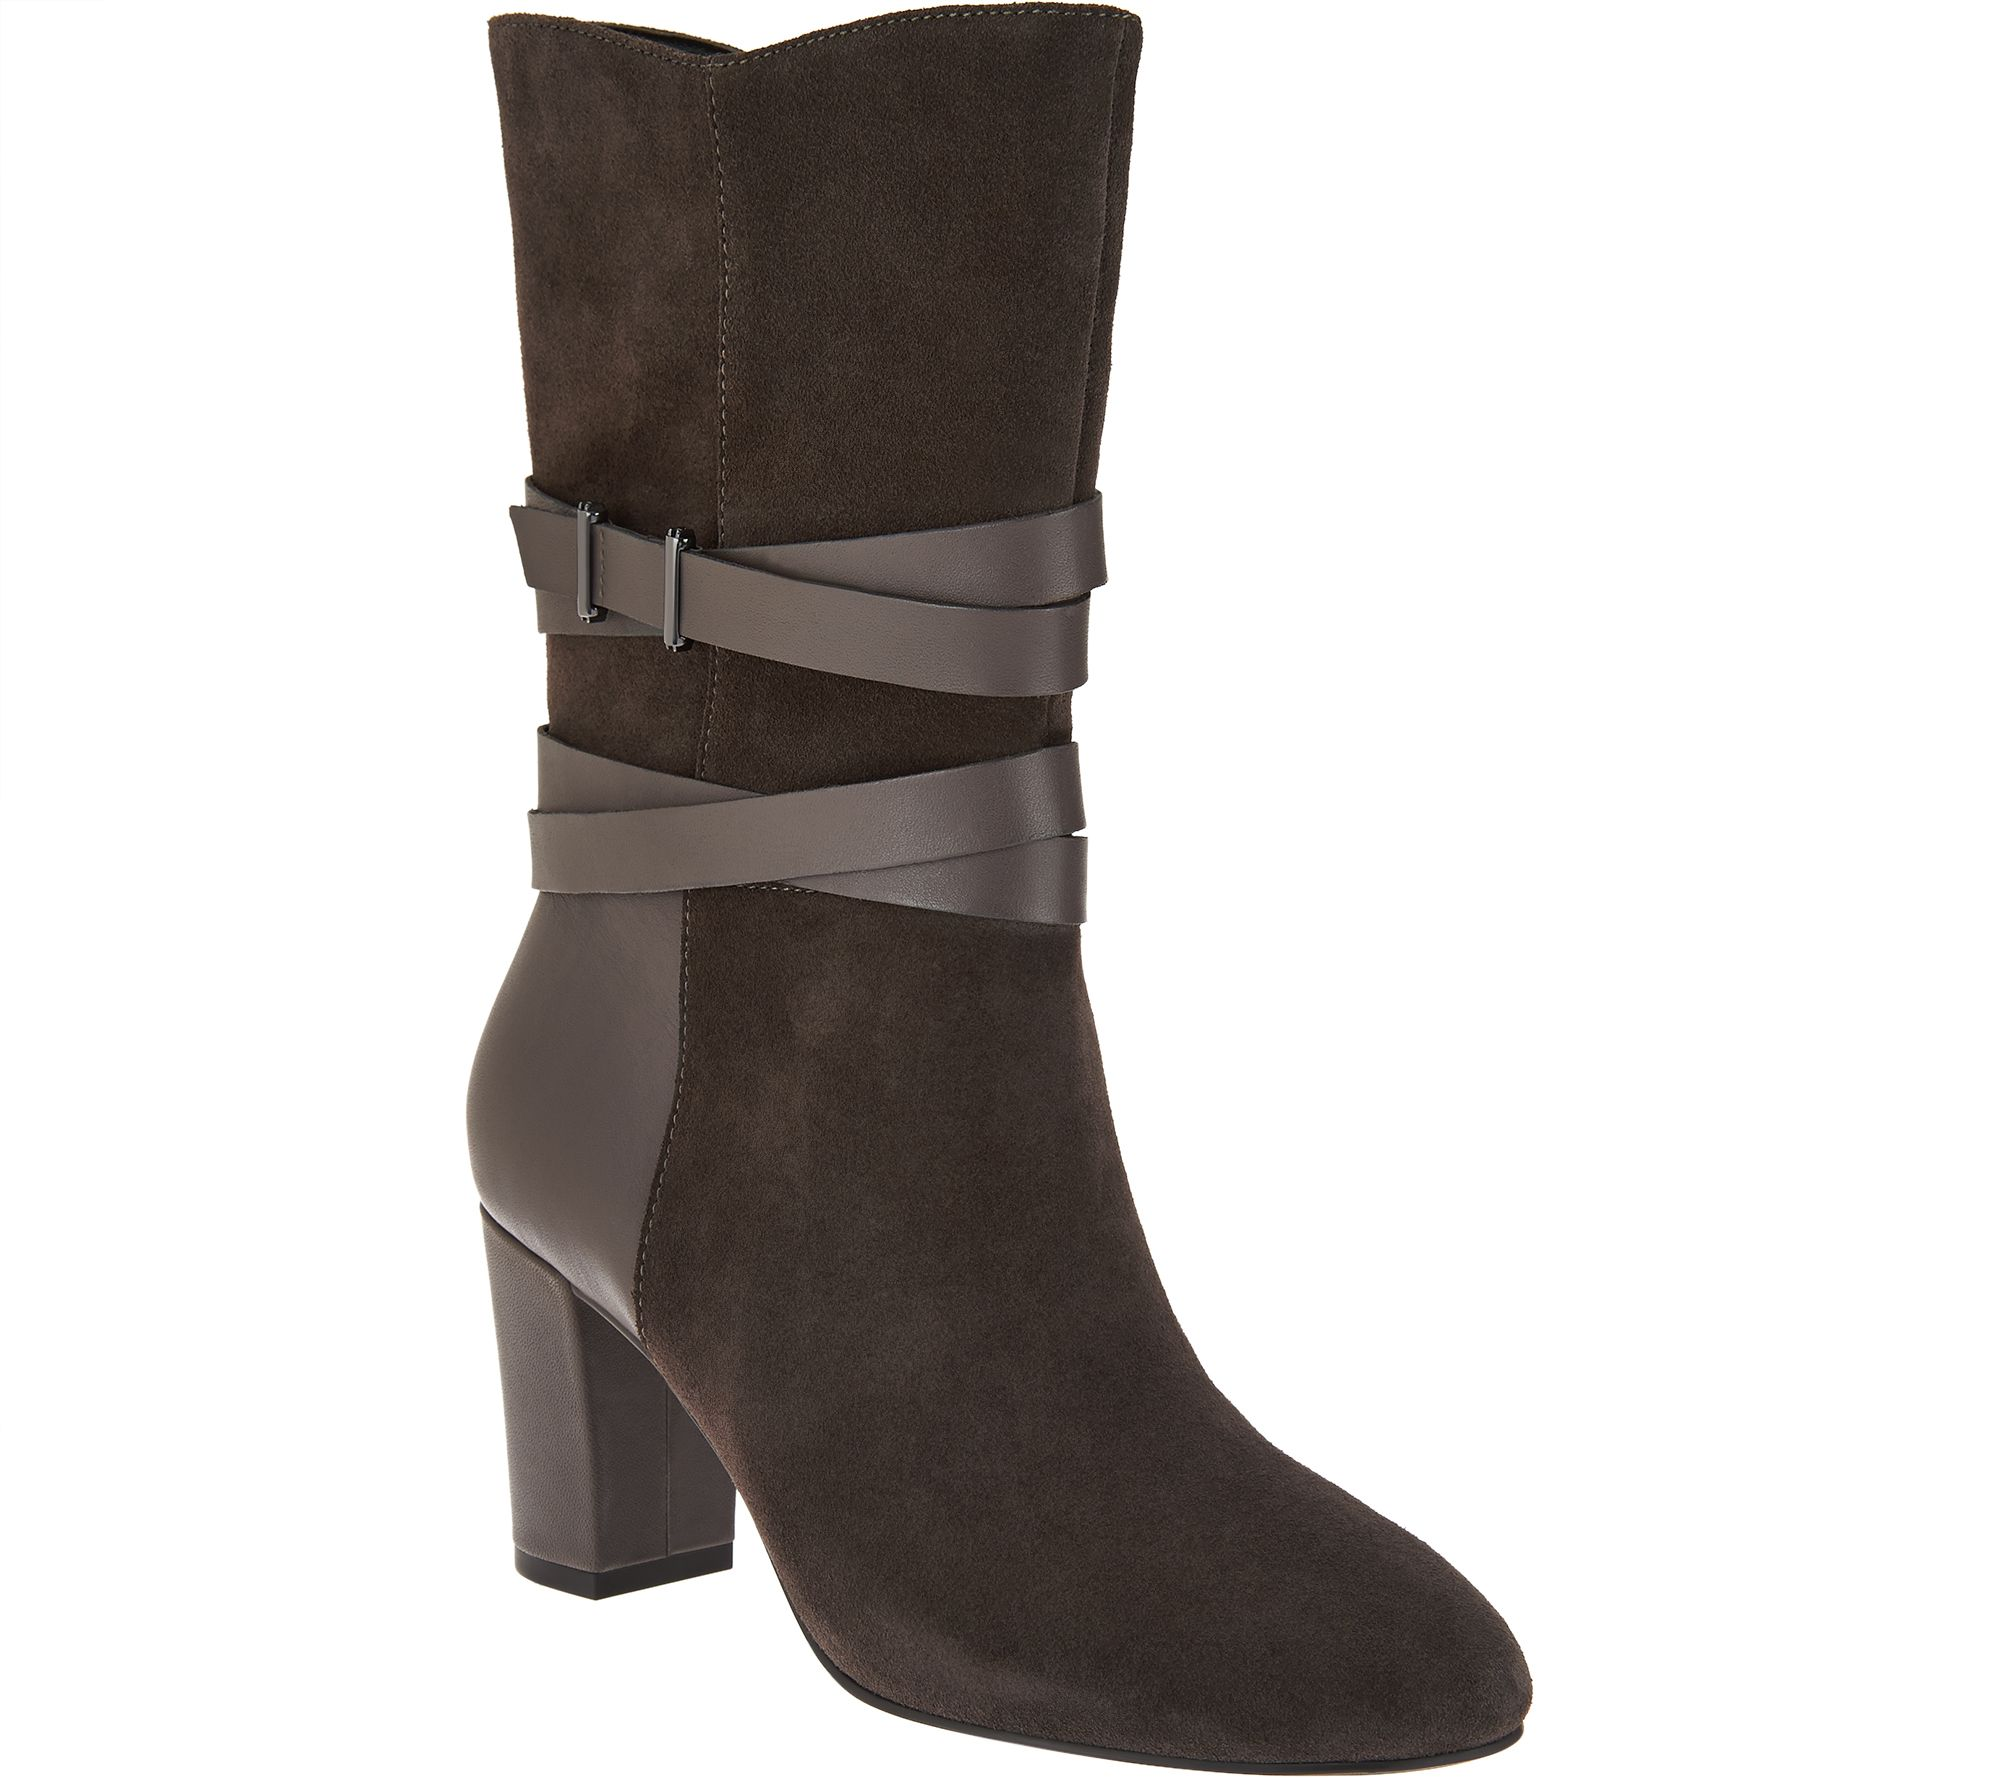 H By Halston Mid Calf Boots With Leather Strap Detail   Quinn   A280386